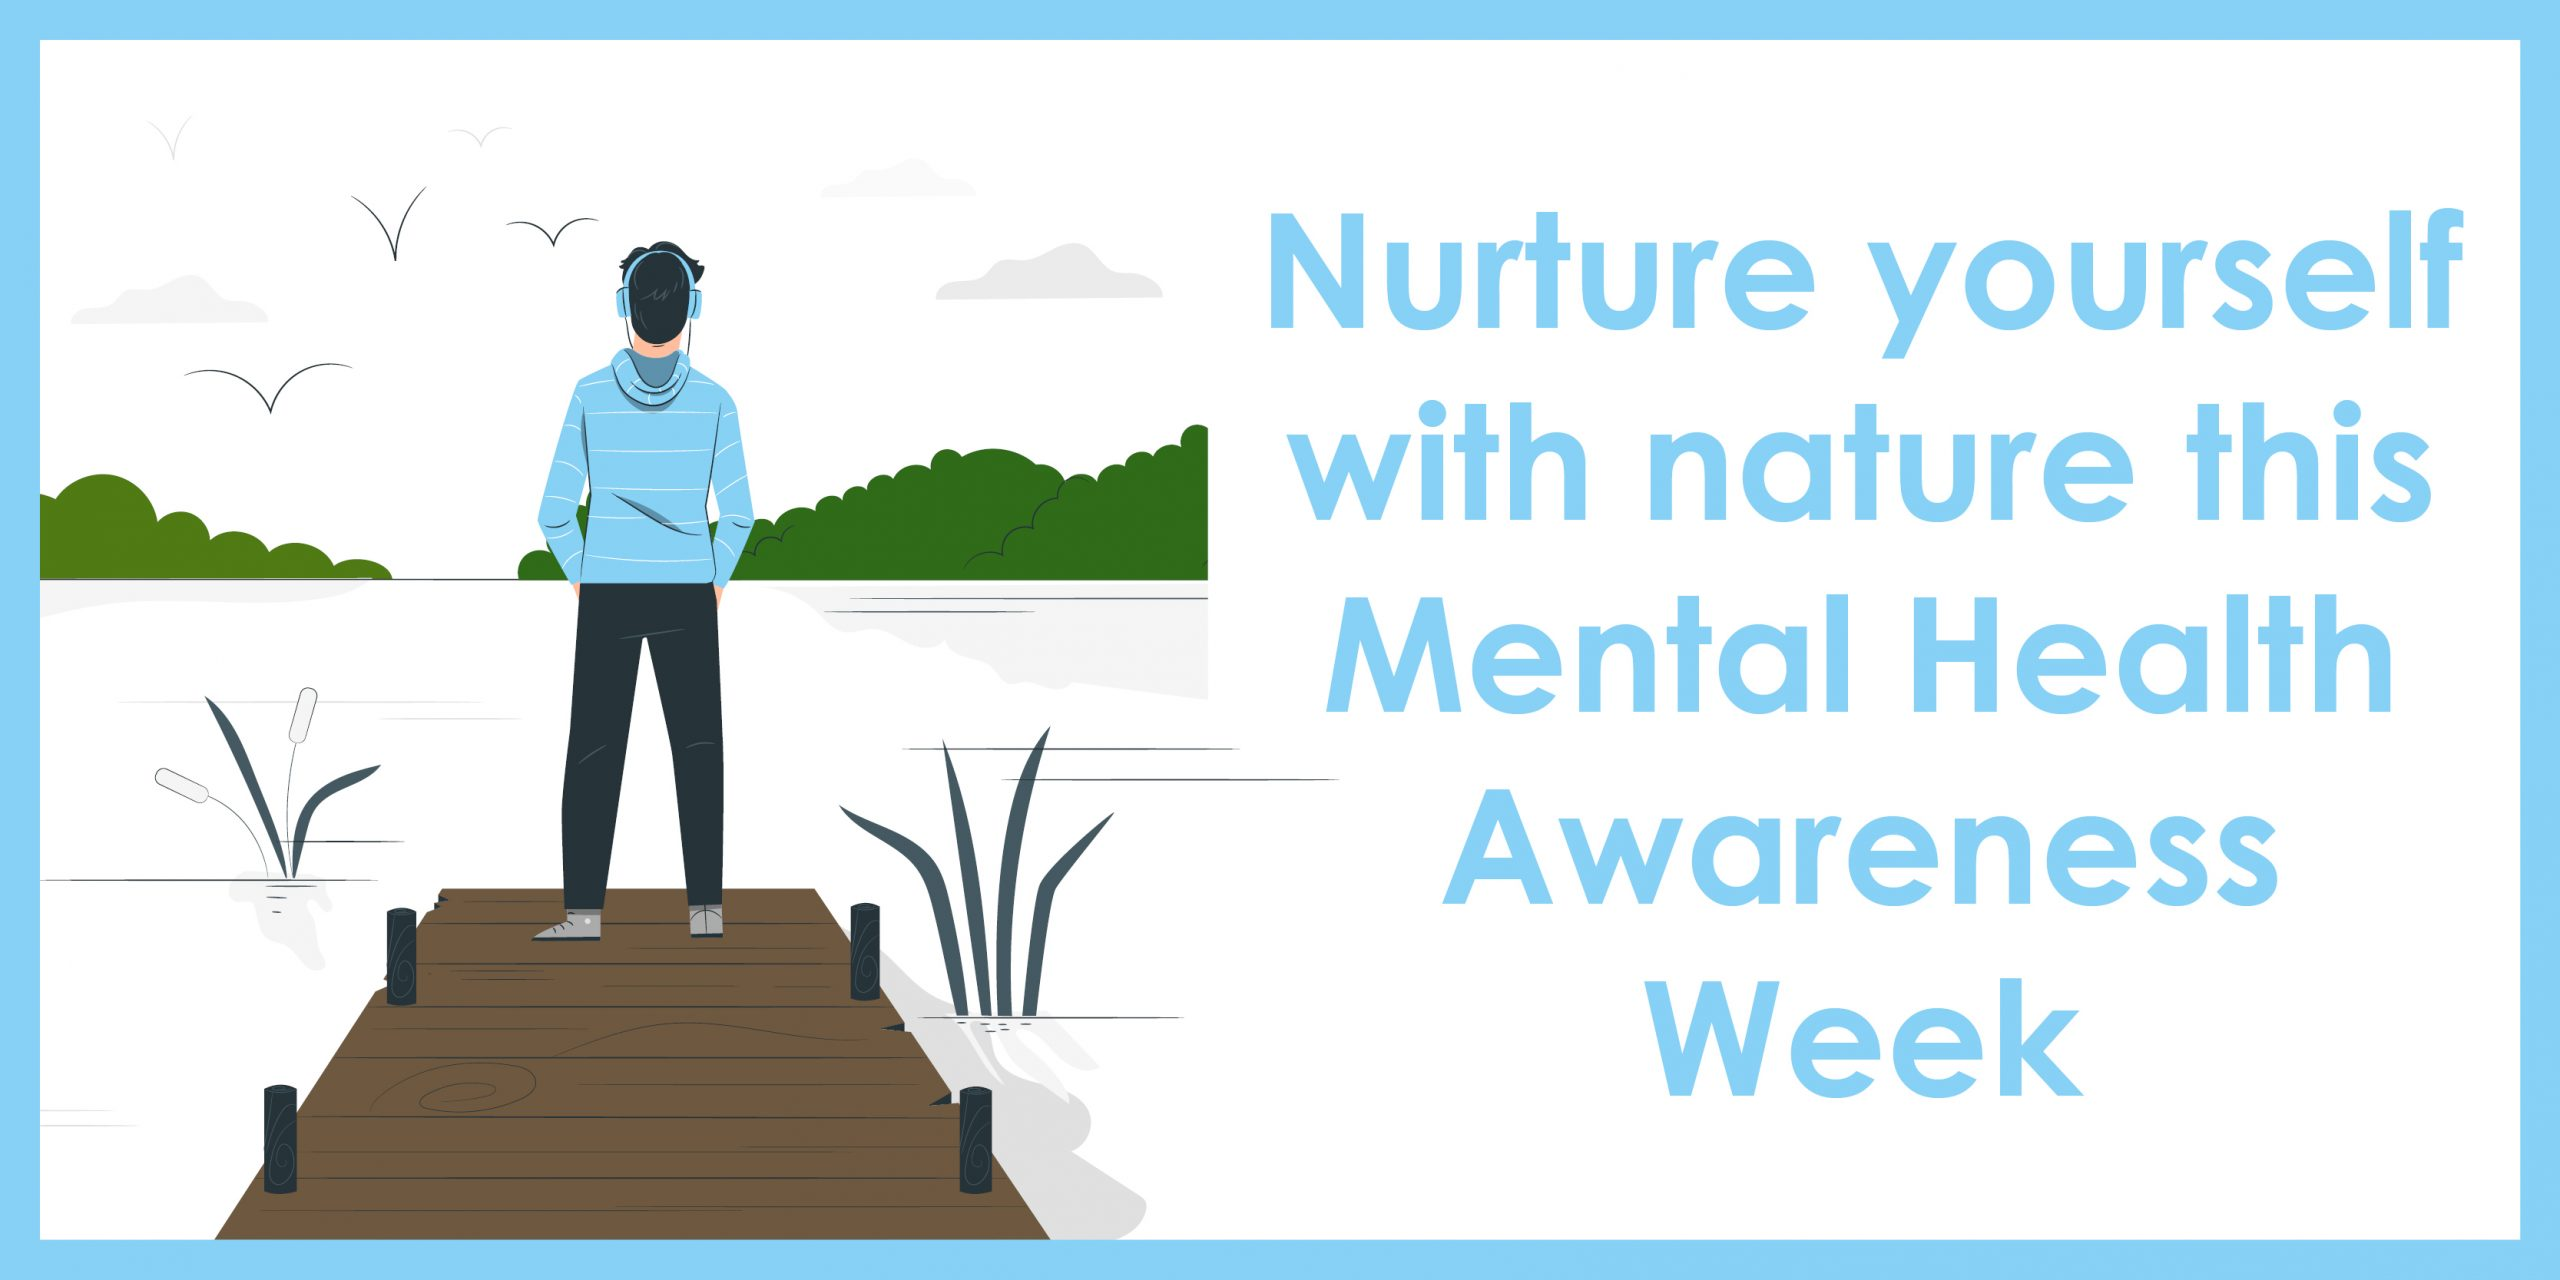 Nurture yourself with nature this Mental Health Awareness Week